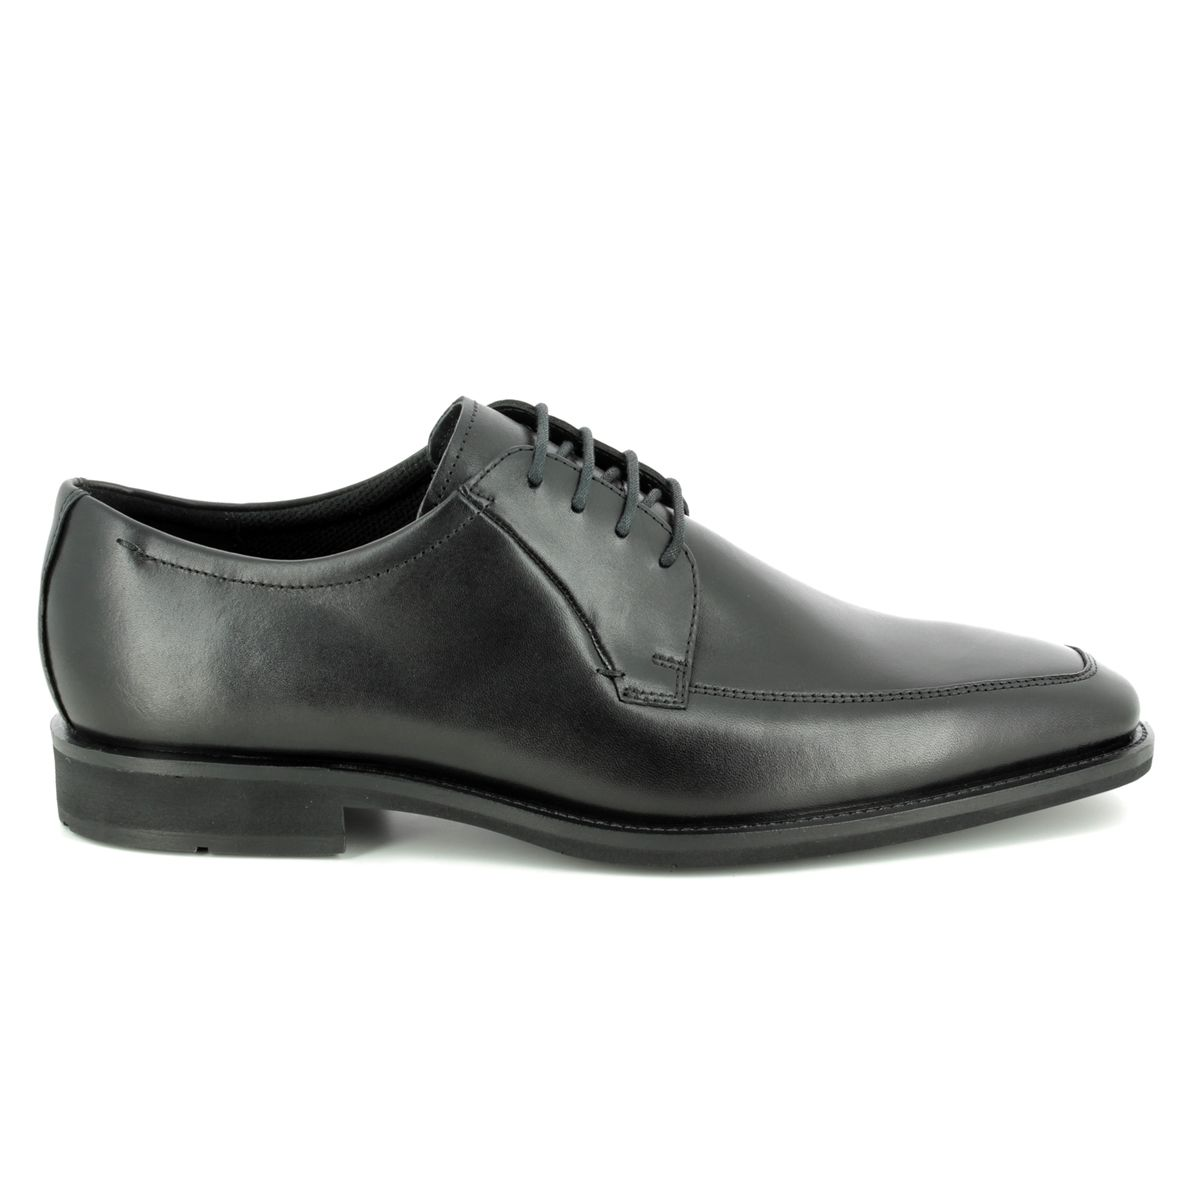 cfbb043890b ECCO Formal Shoes - Black leather - 640714 01001 CALCAN